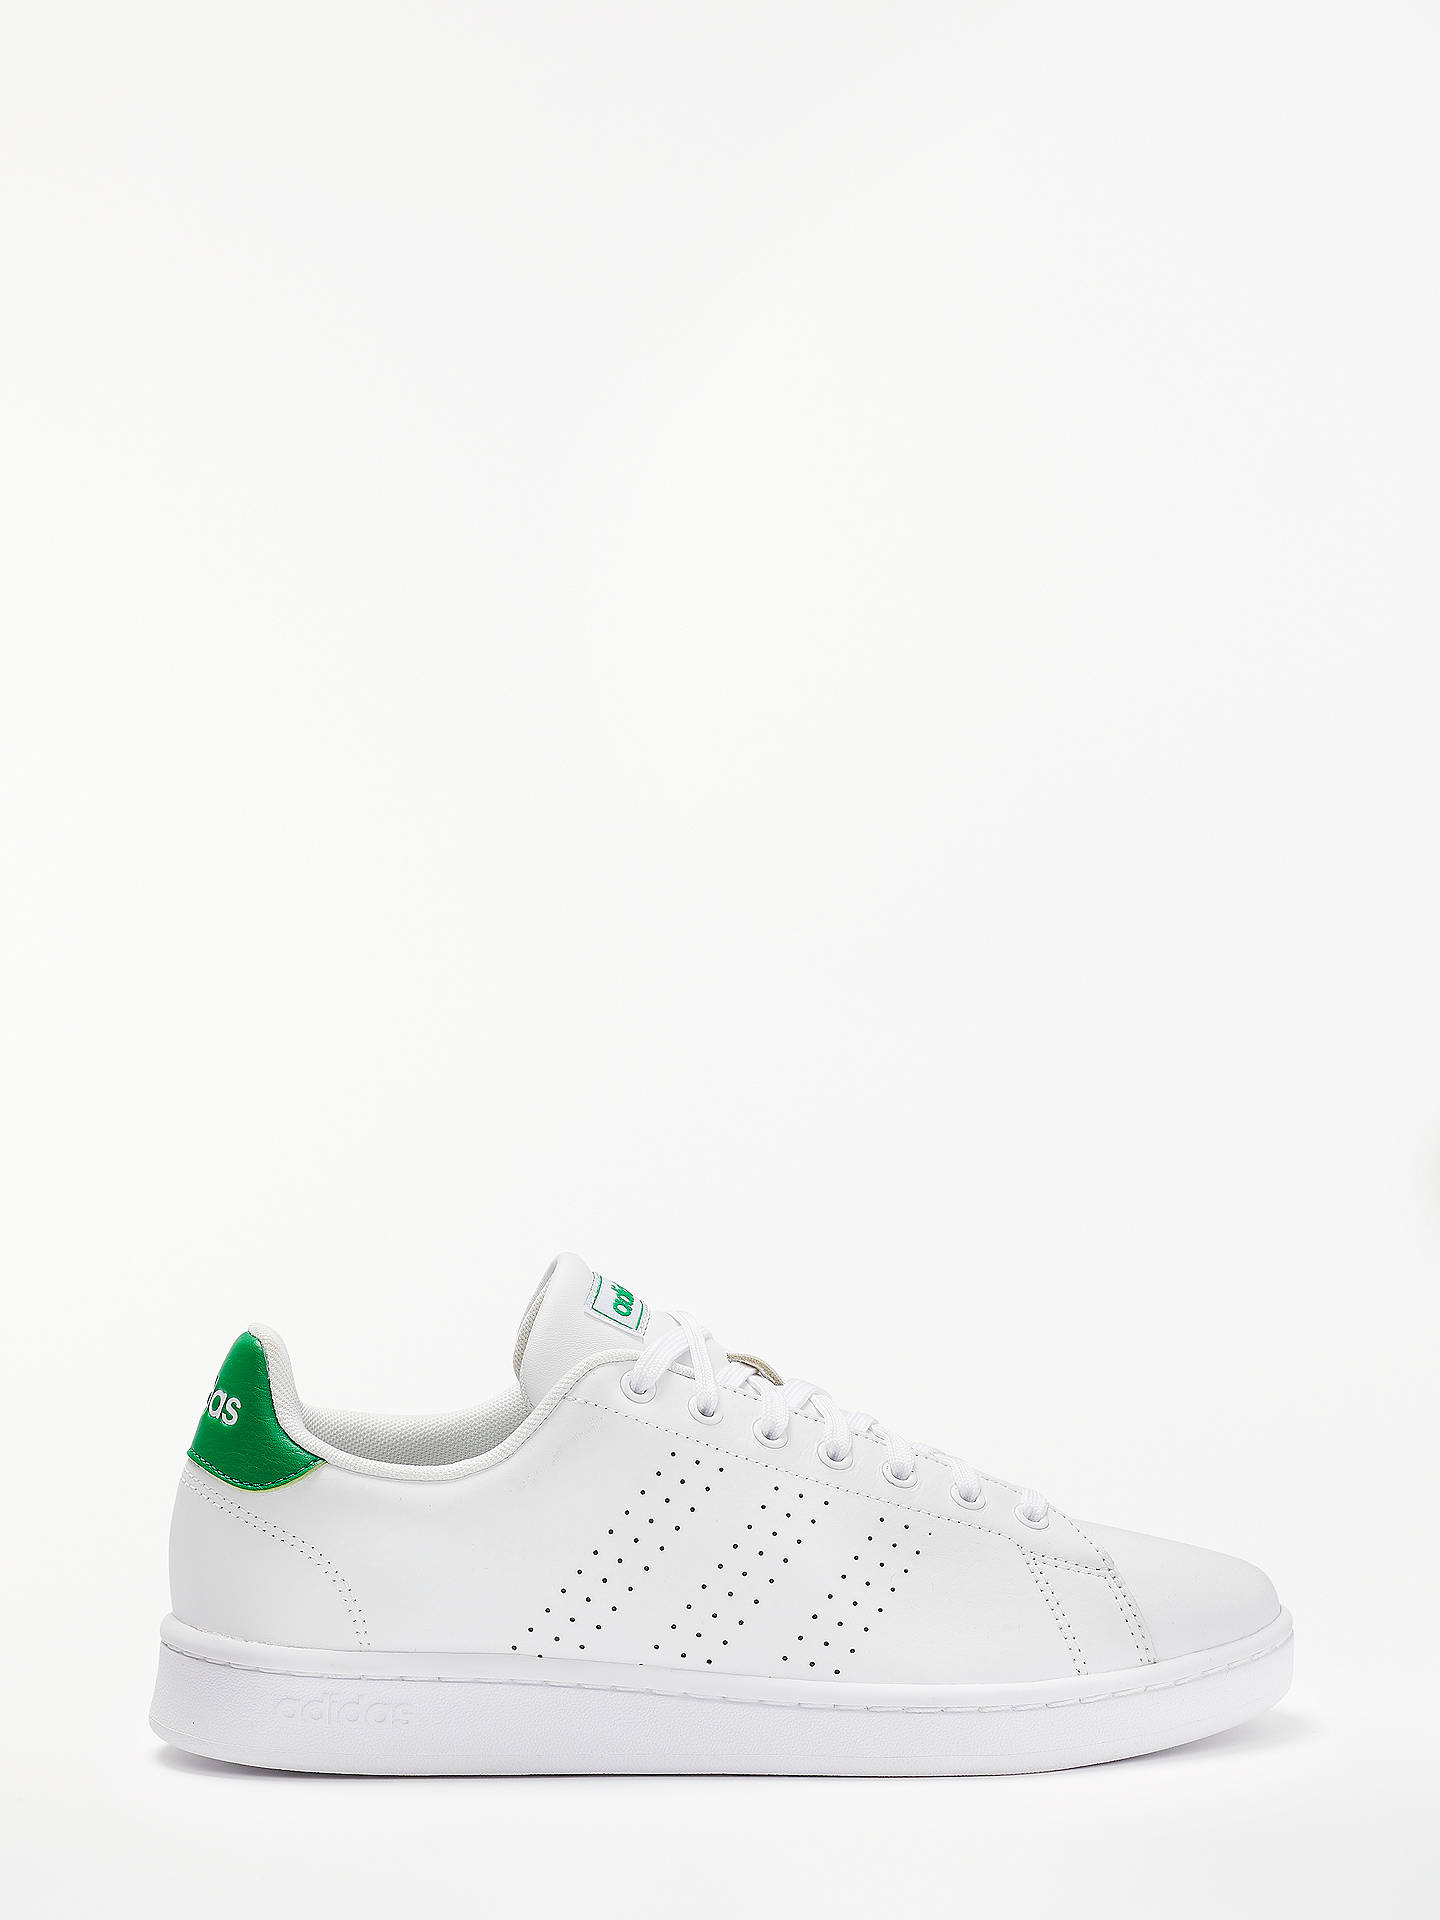 Buy adidas Advantage Men's Trainers, FTWR White/Green, 11 Online at johnlewis.com